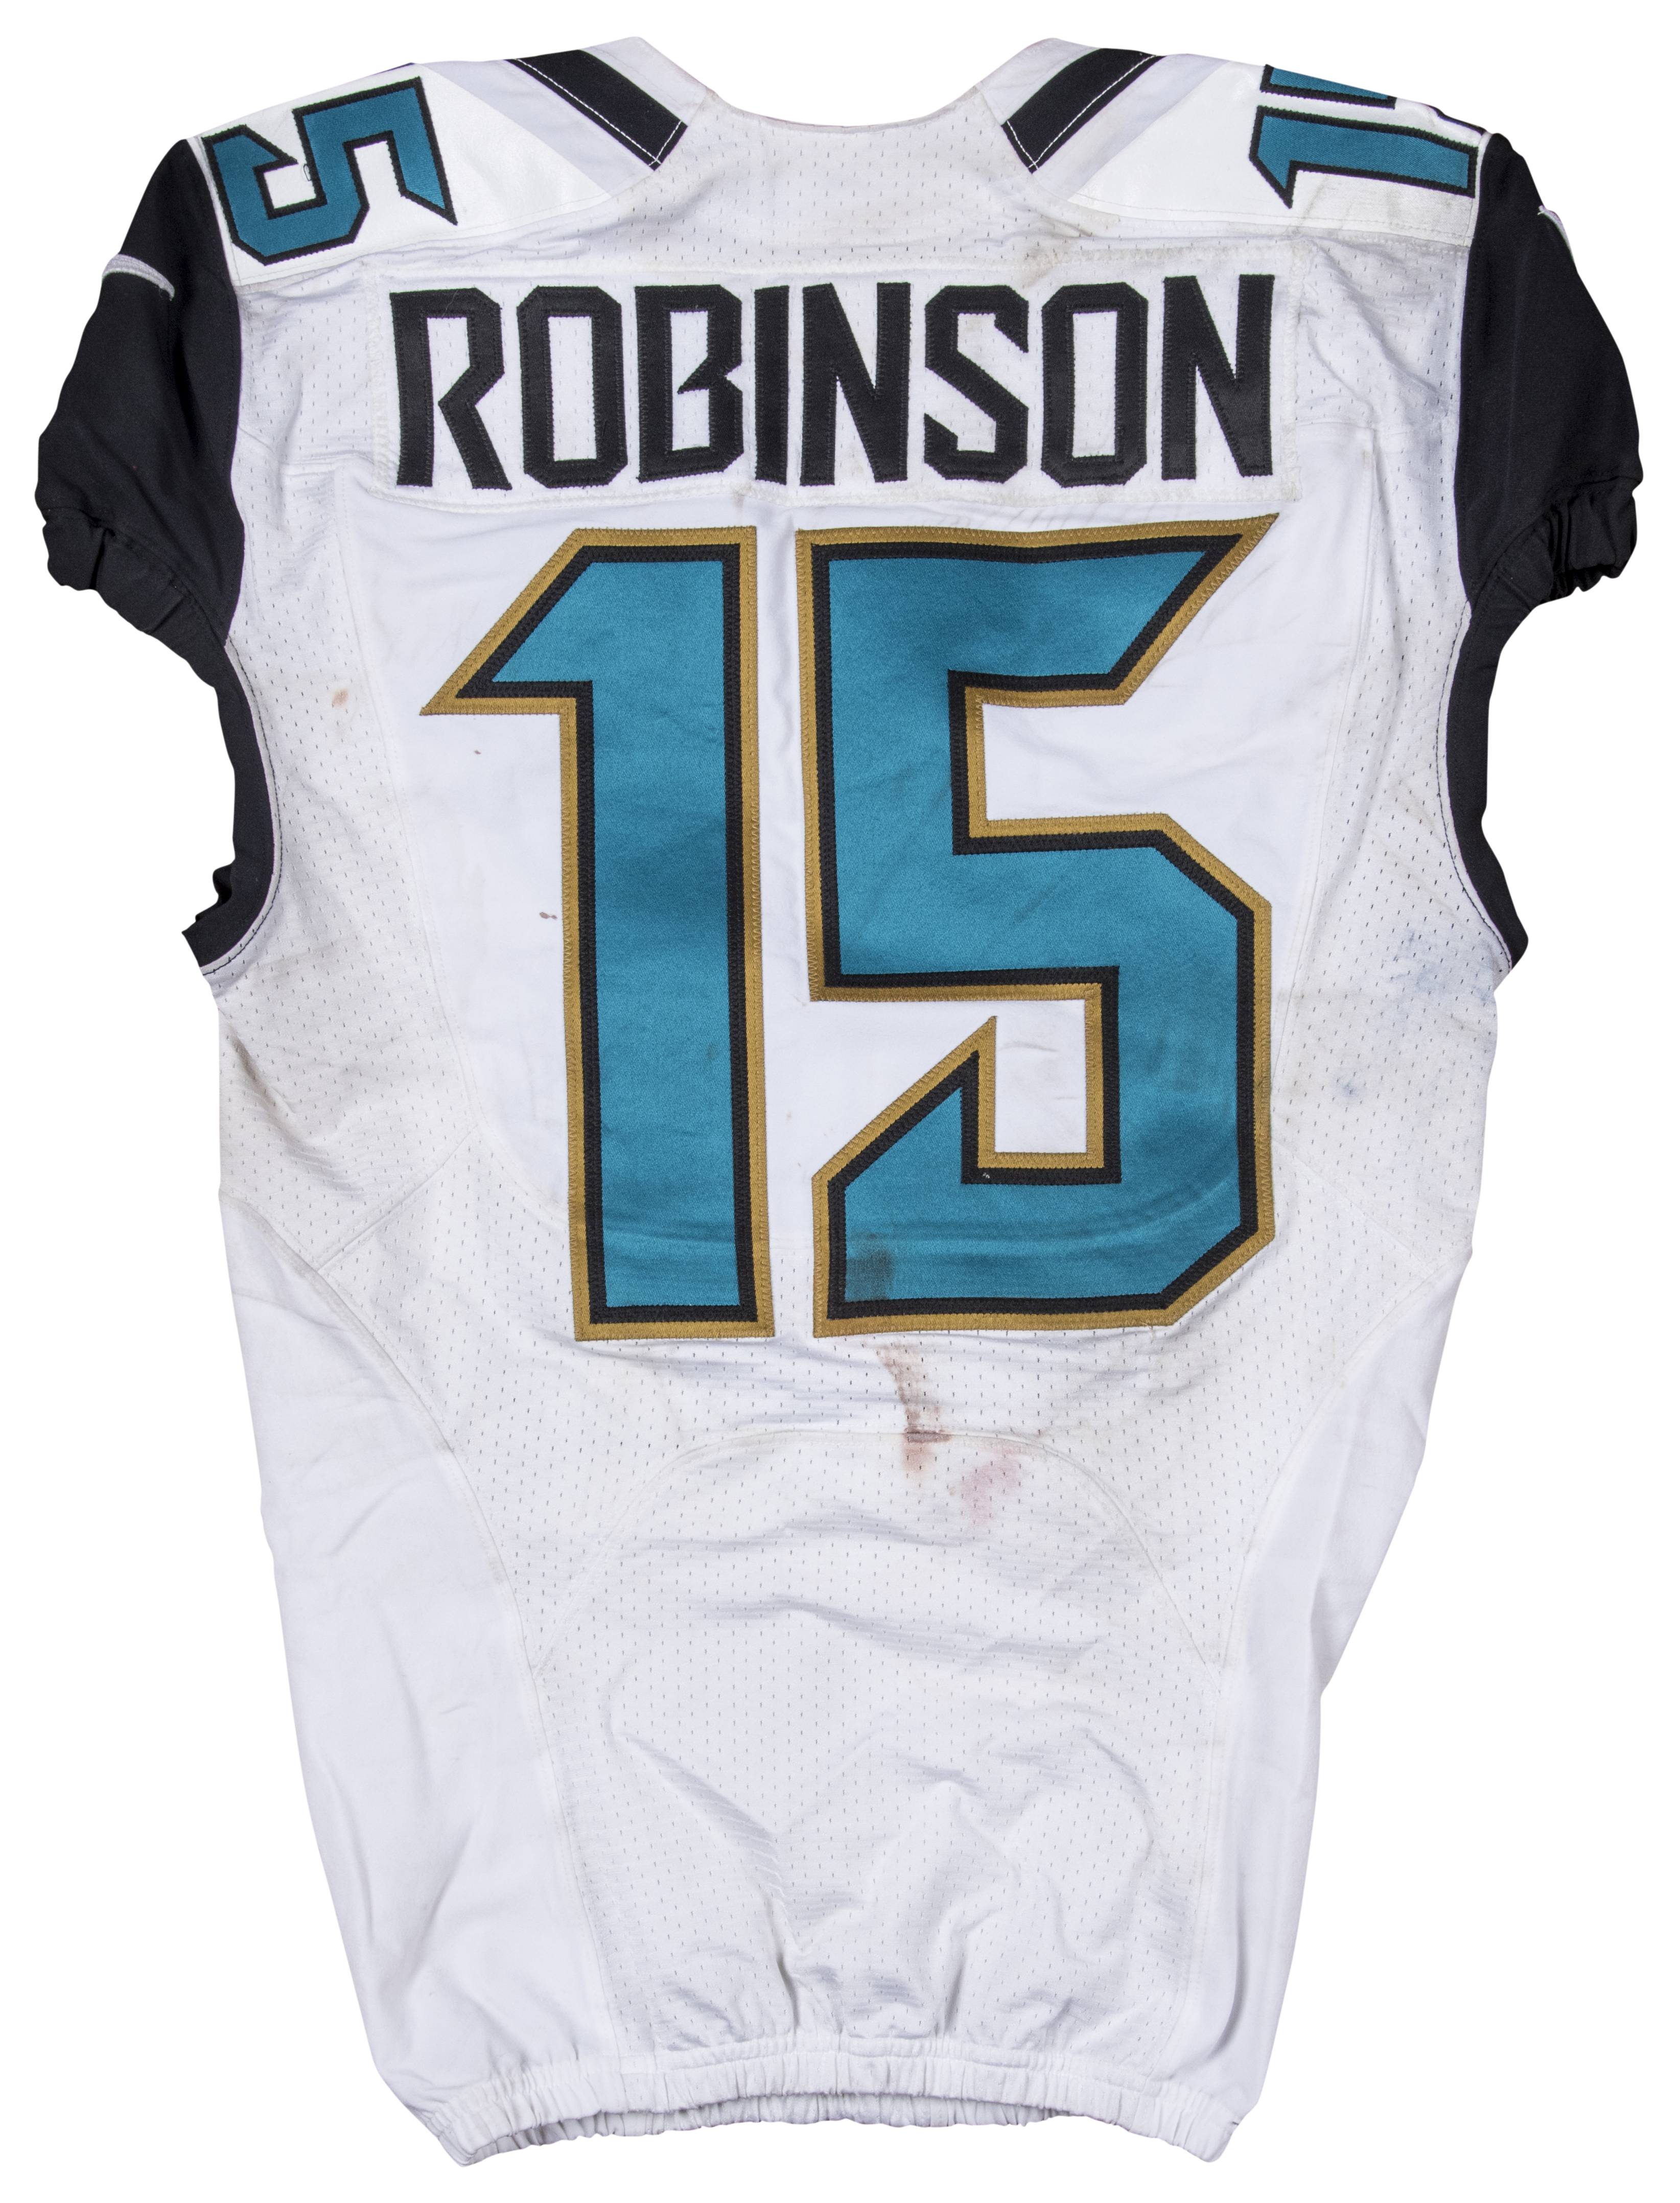 a651b6118 2015 Allen Robinson Game Used Jacksonville Jaguars Home Jersey. Hover to  zoom